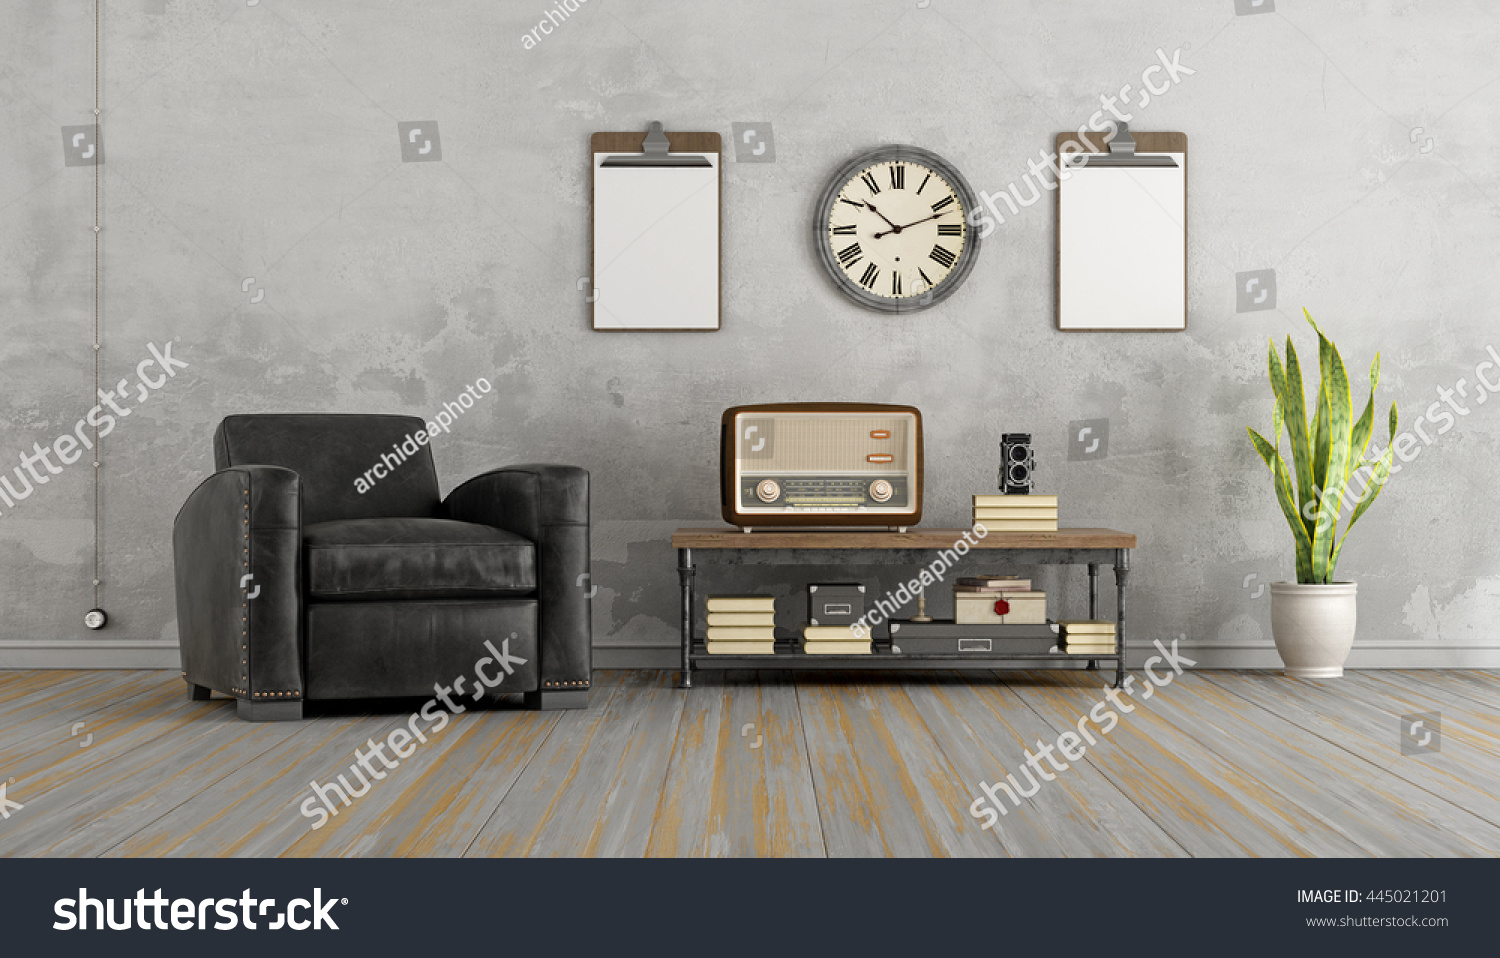 Vintage Living Room With Black Armchair And Old Radio On Coffee Table